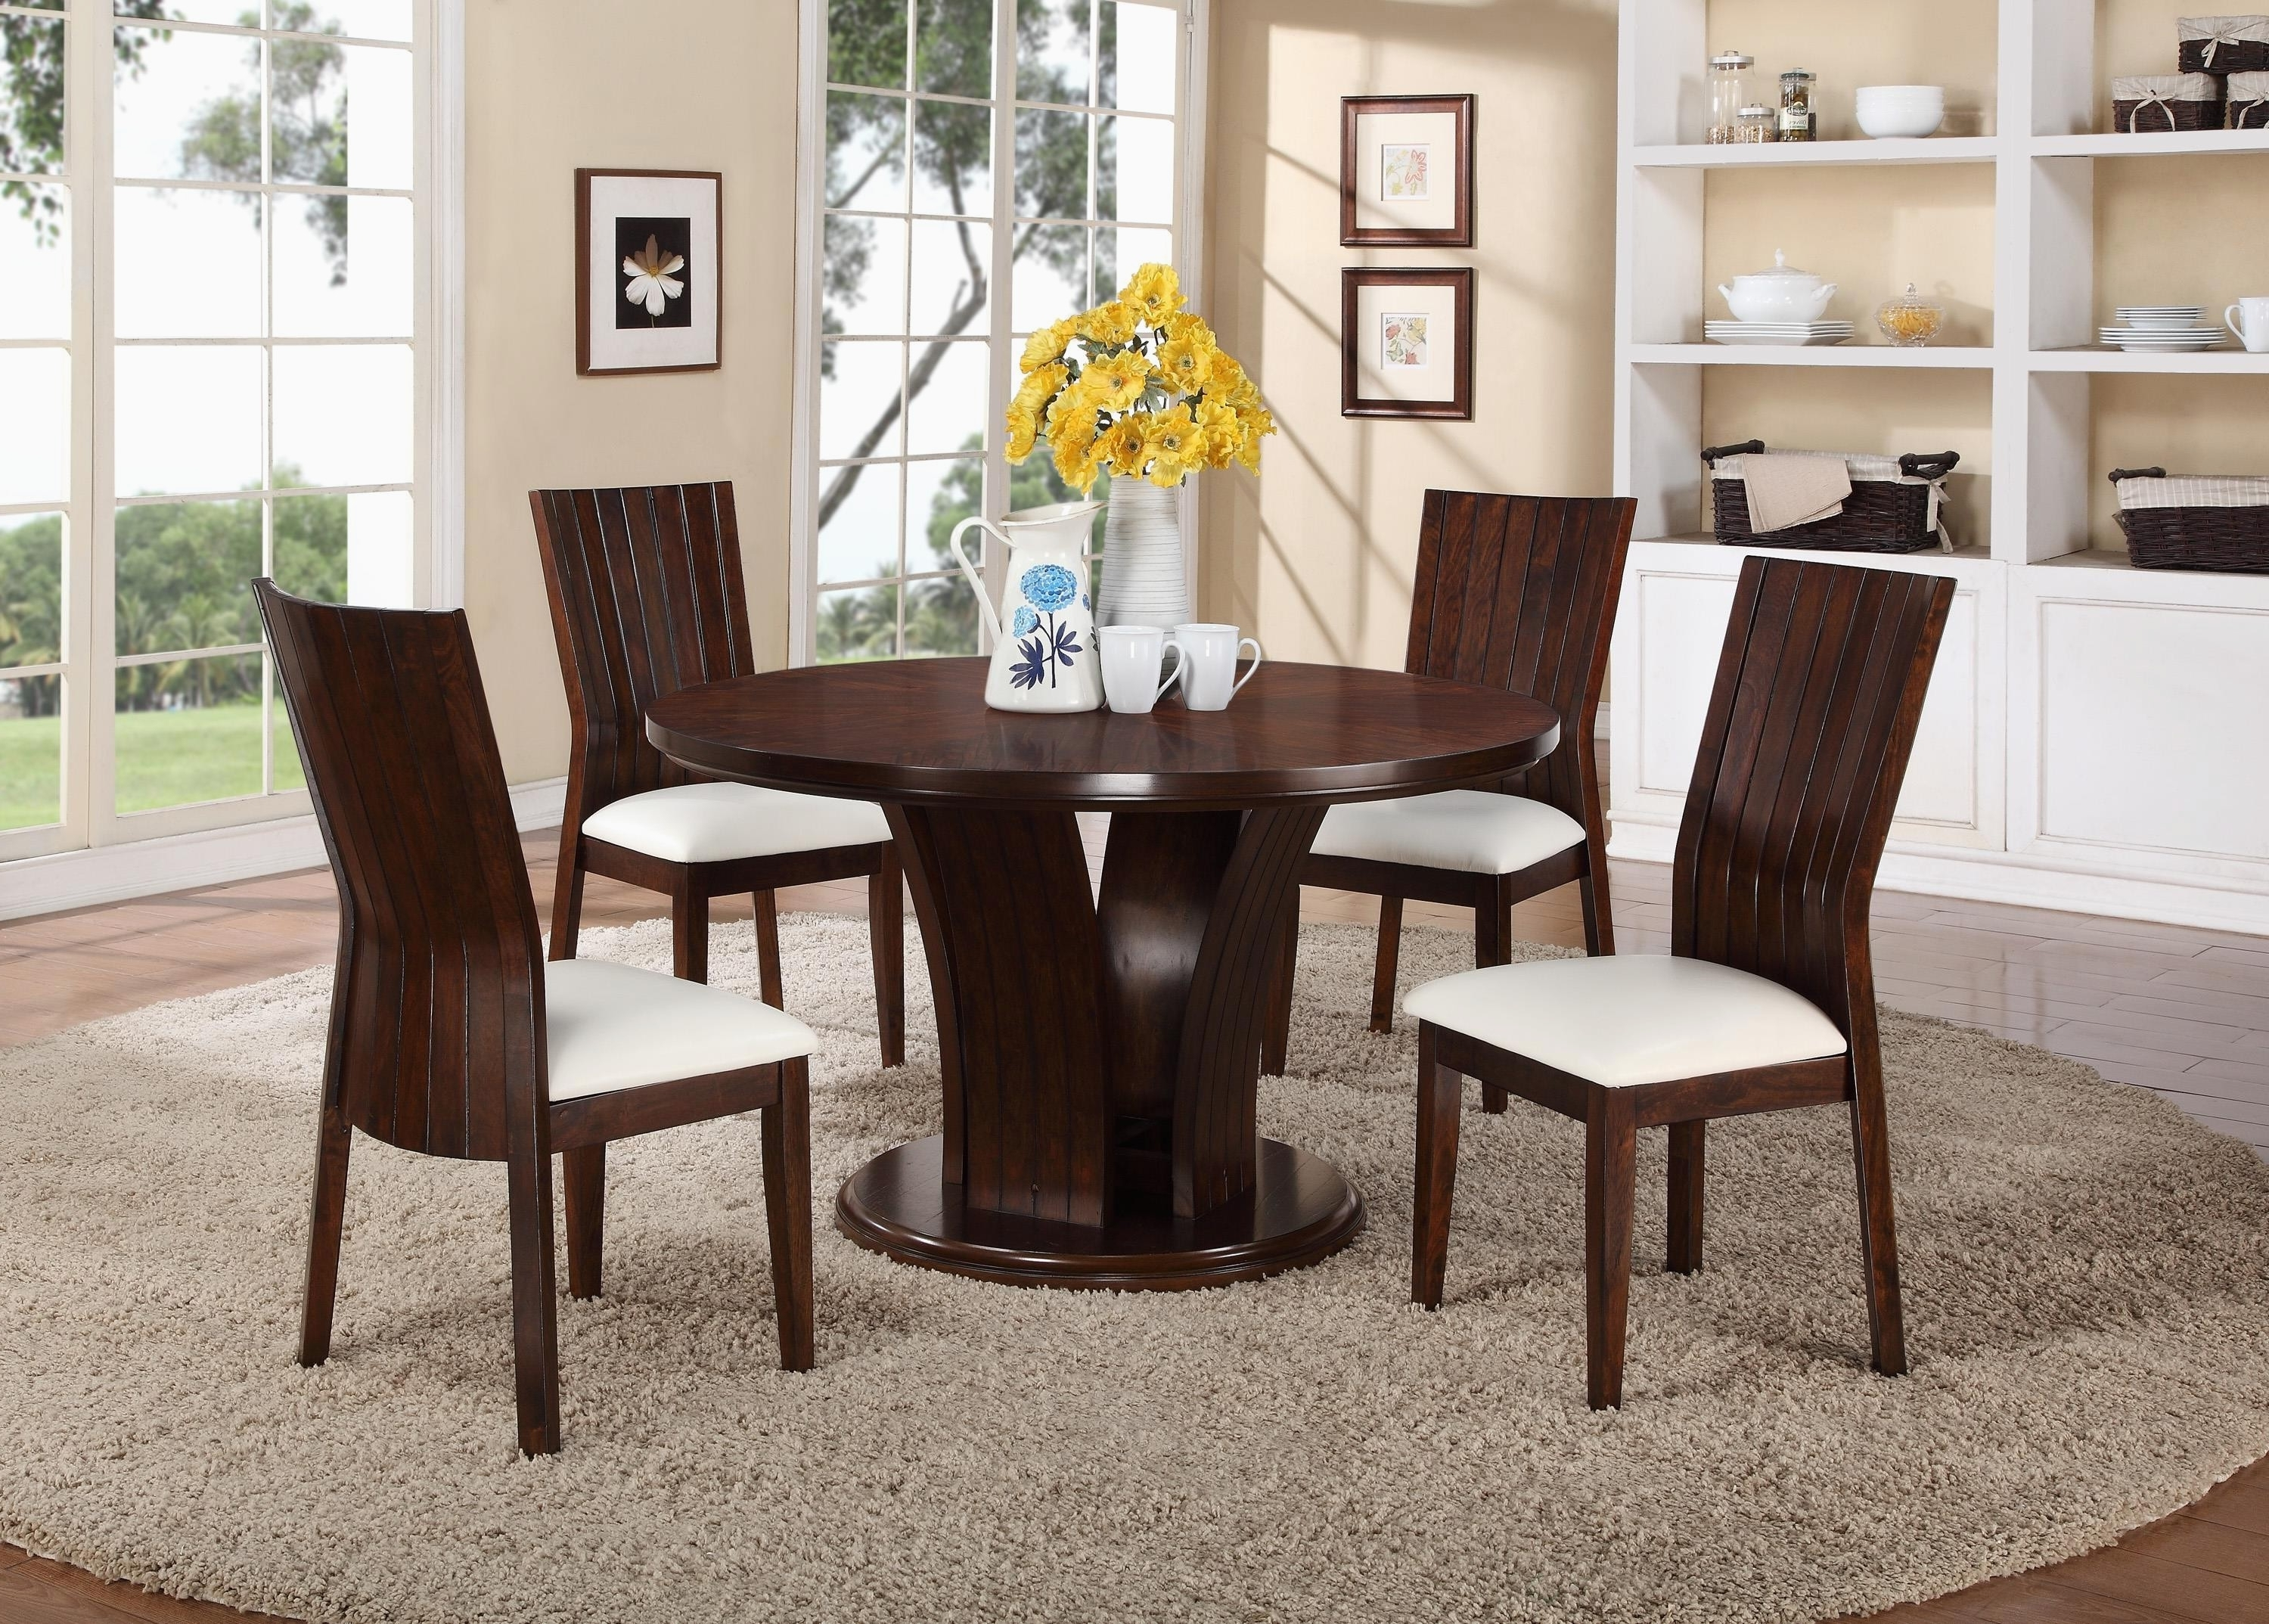 Best And Newest Wooden Dining Room Table New Square Dining Tables For Sale Petite With Wood Dining Tables (View 16 of 25)